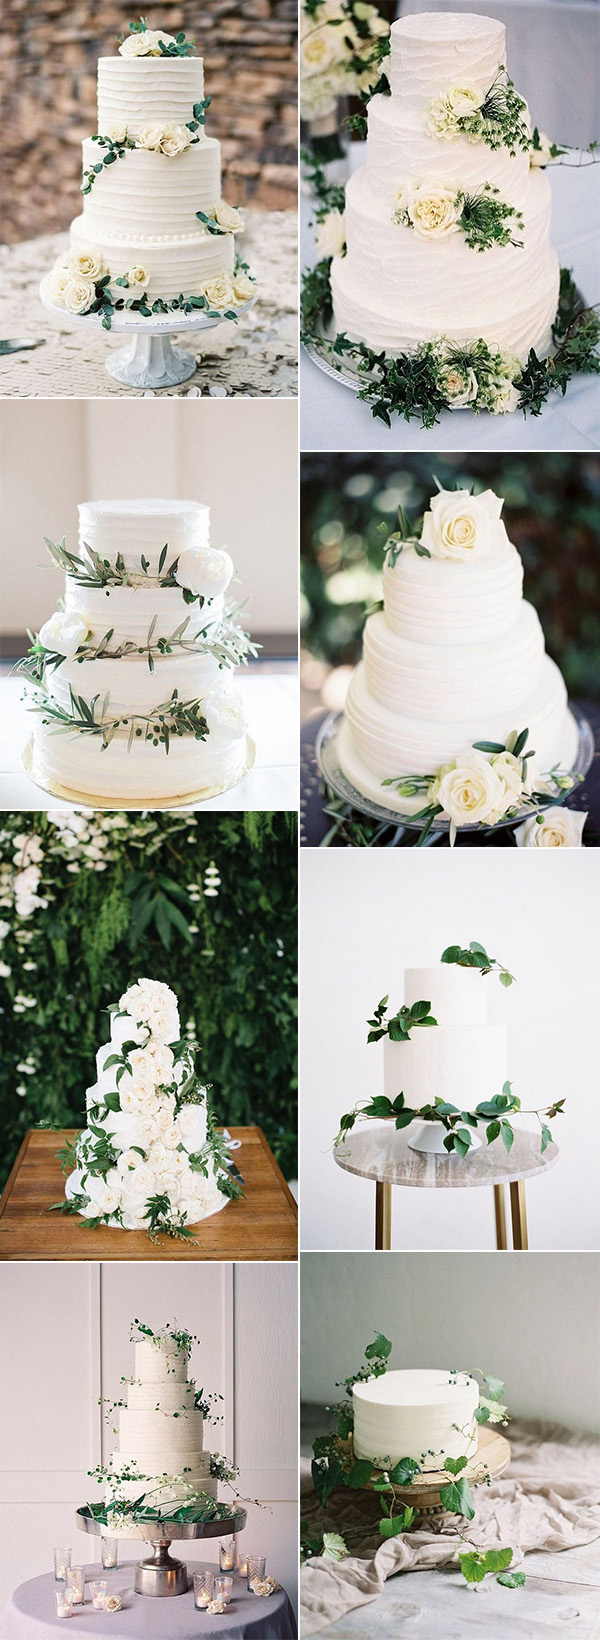 simple and elegant white and green wedding cakes for 2018 trends